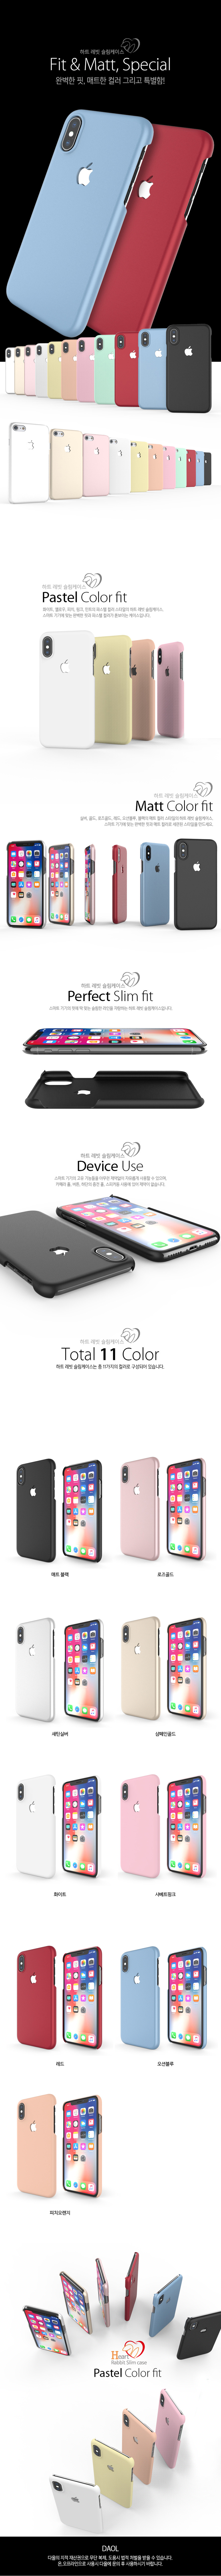 완벽한 핏, 매트한 컬러 그리고 특별함 Patset Color fit Matt color fit Perfect Slim fit Device Use Tatal 11 Color